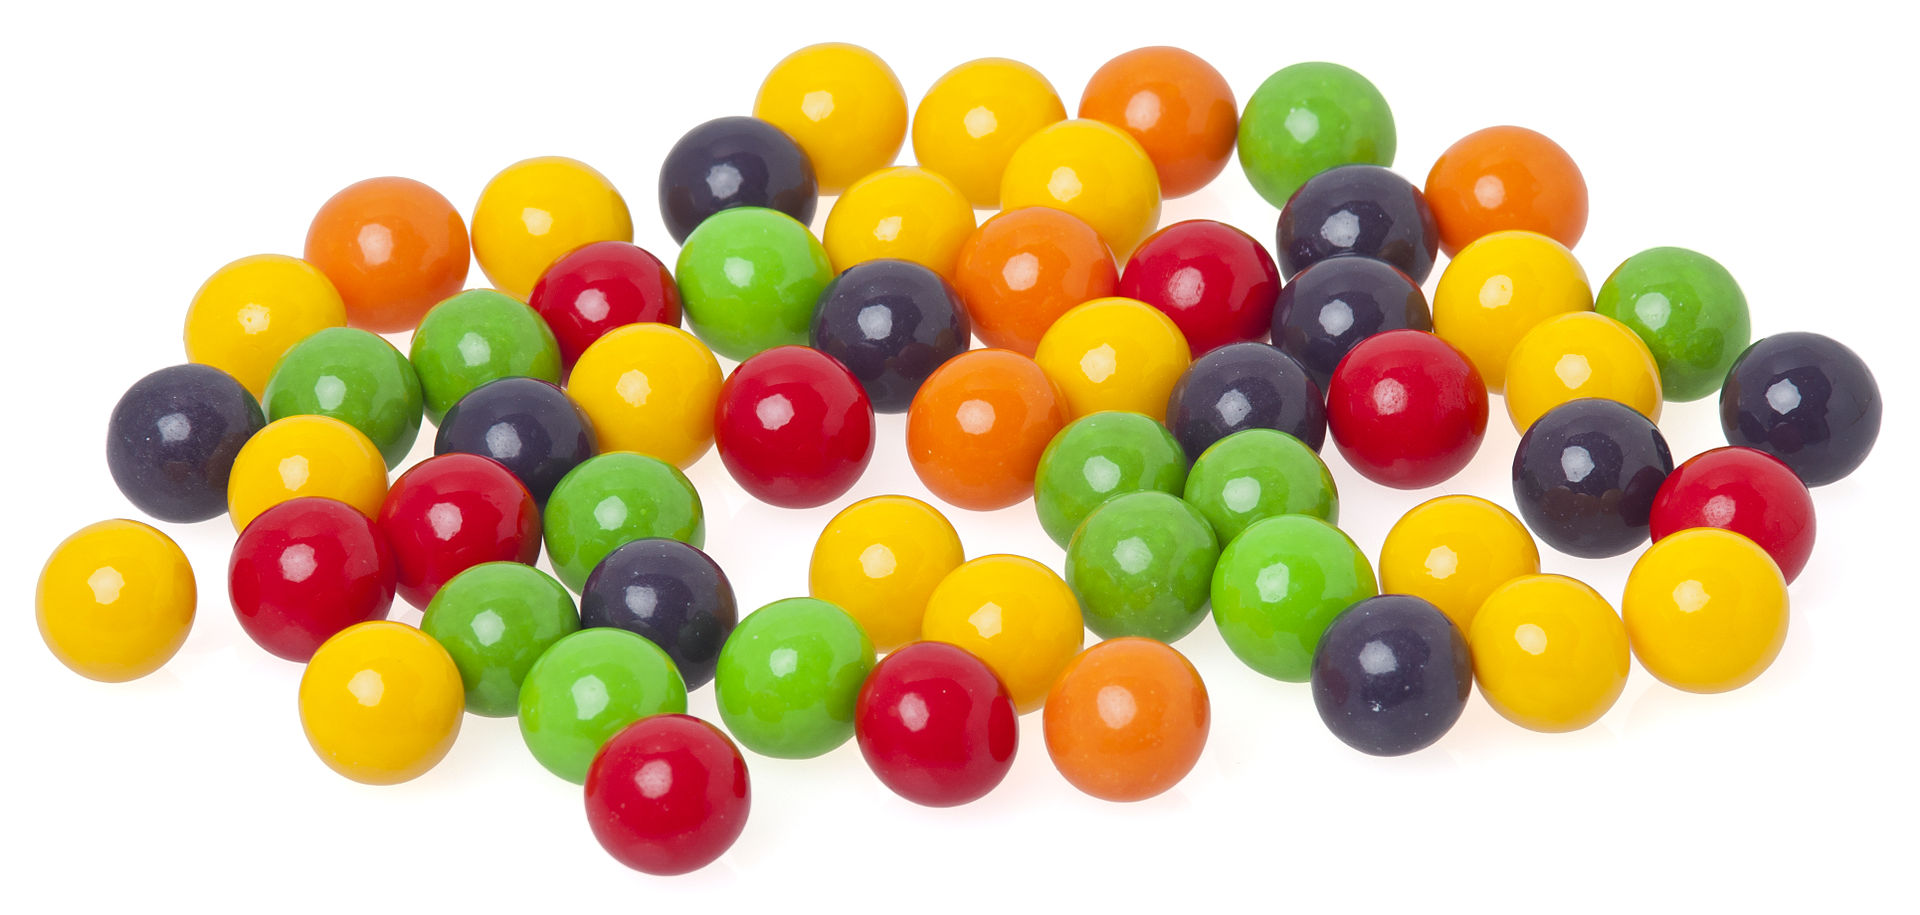 several bits of candy in yellow, red, green, orange and purple